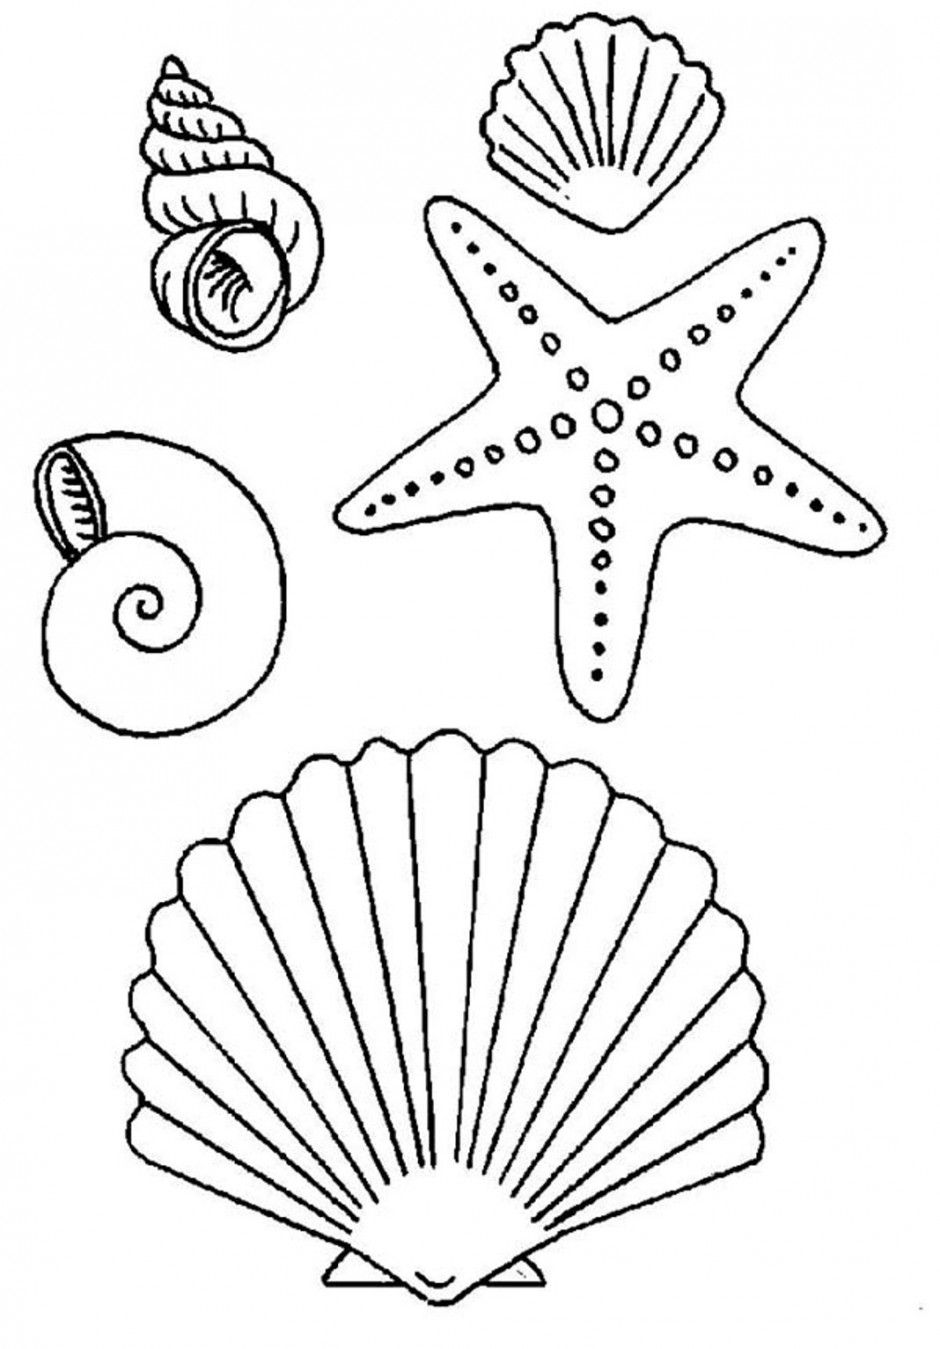 Free Printable Starfish Coloring Pages Dopepicz Seashell Drawing Fish Coloring Page Coloring Pages